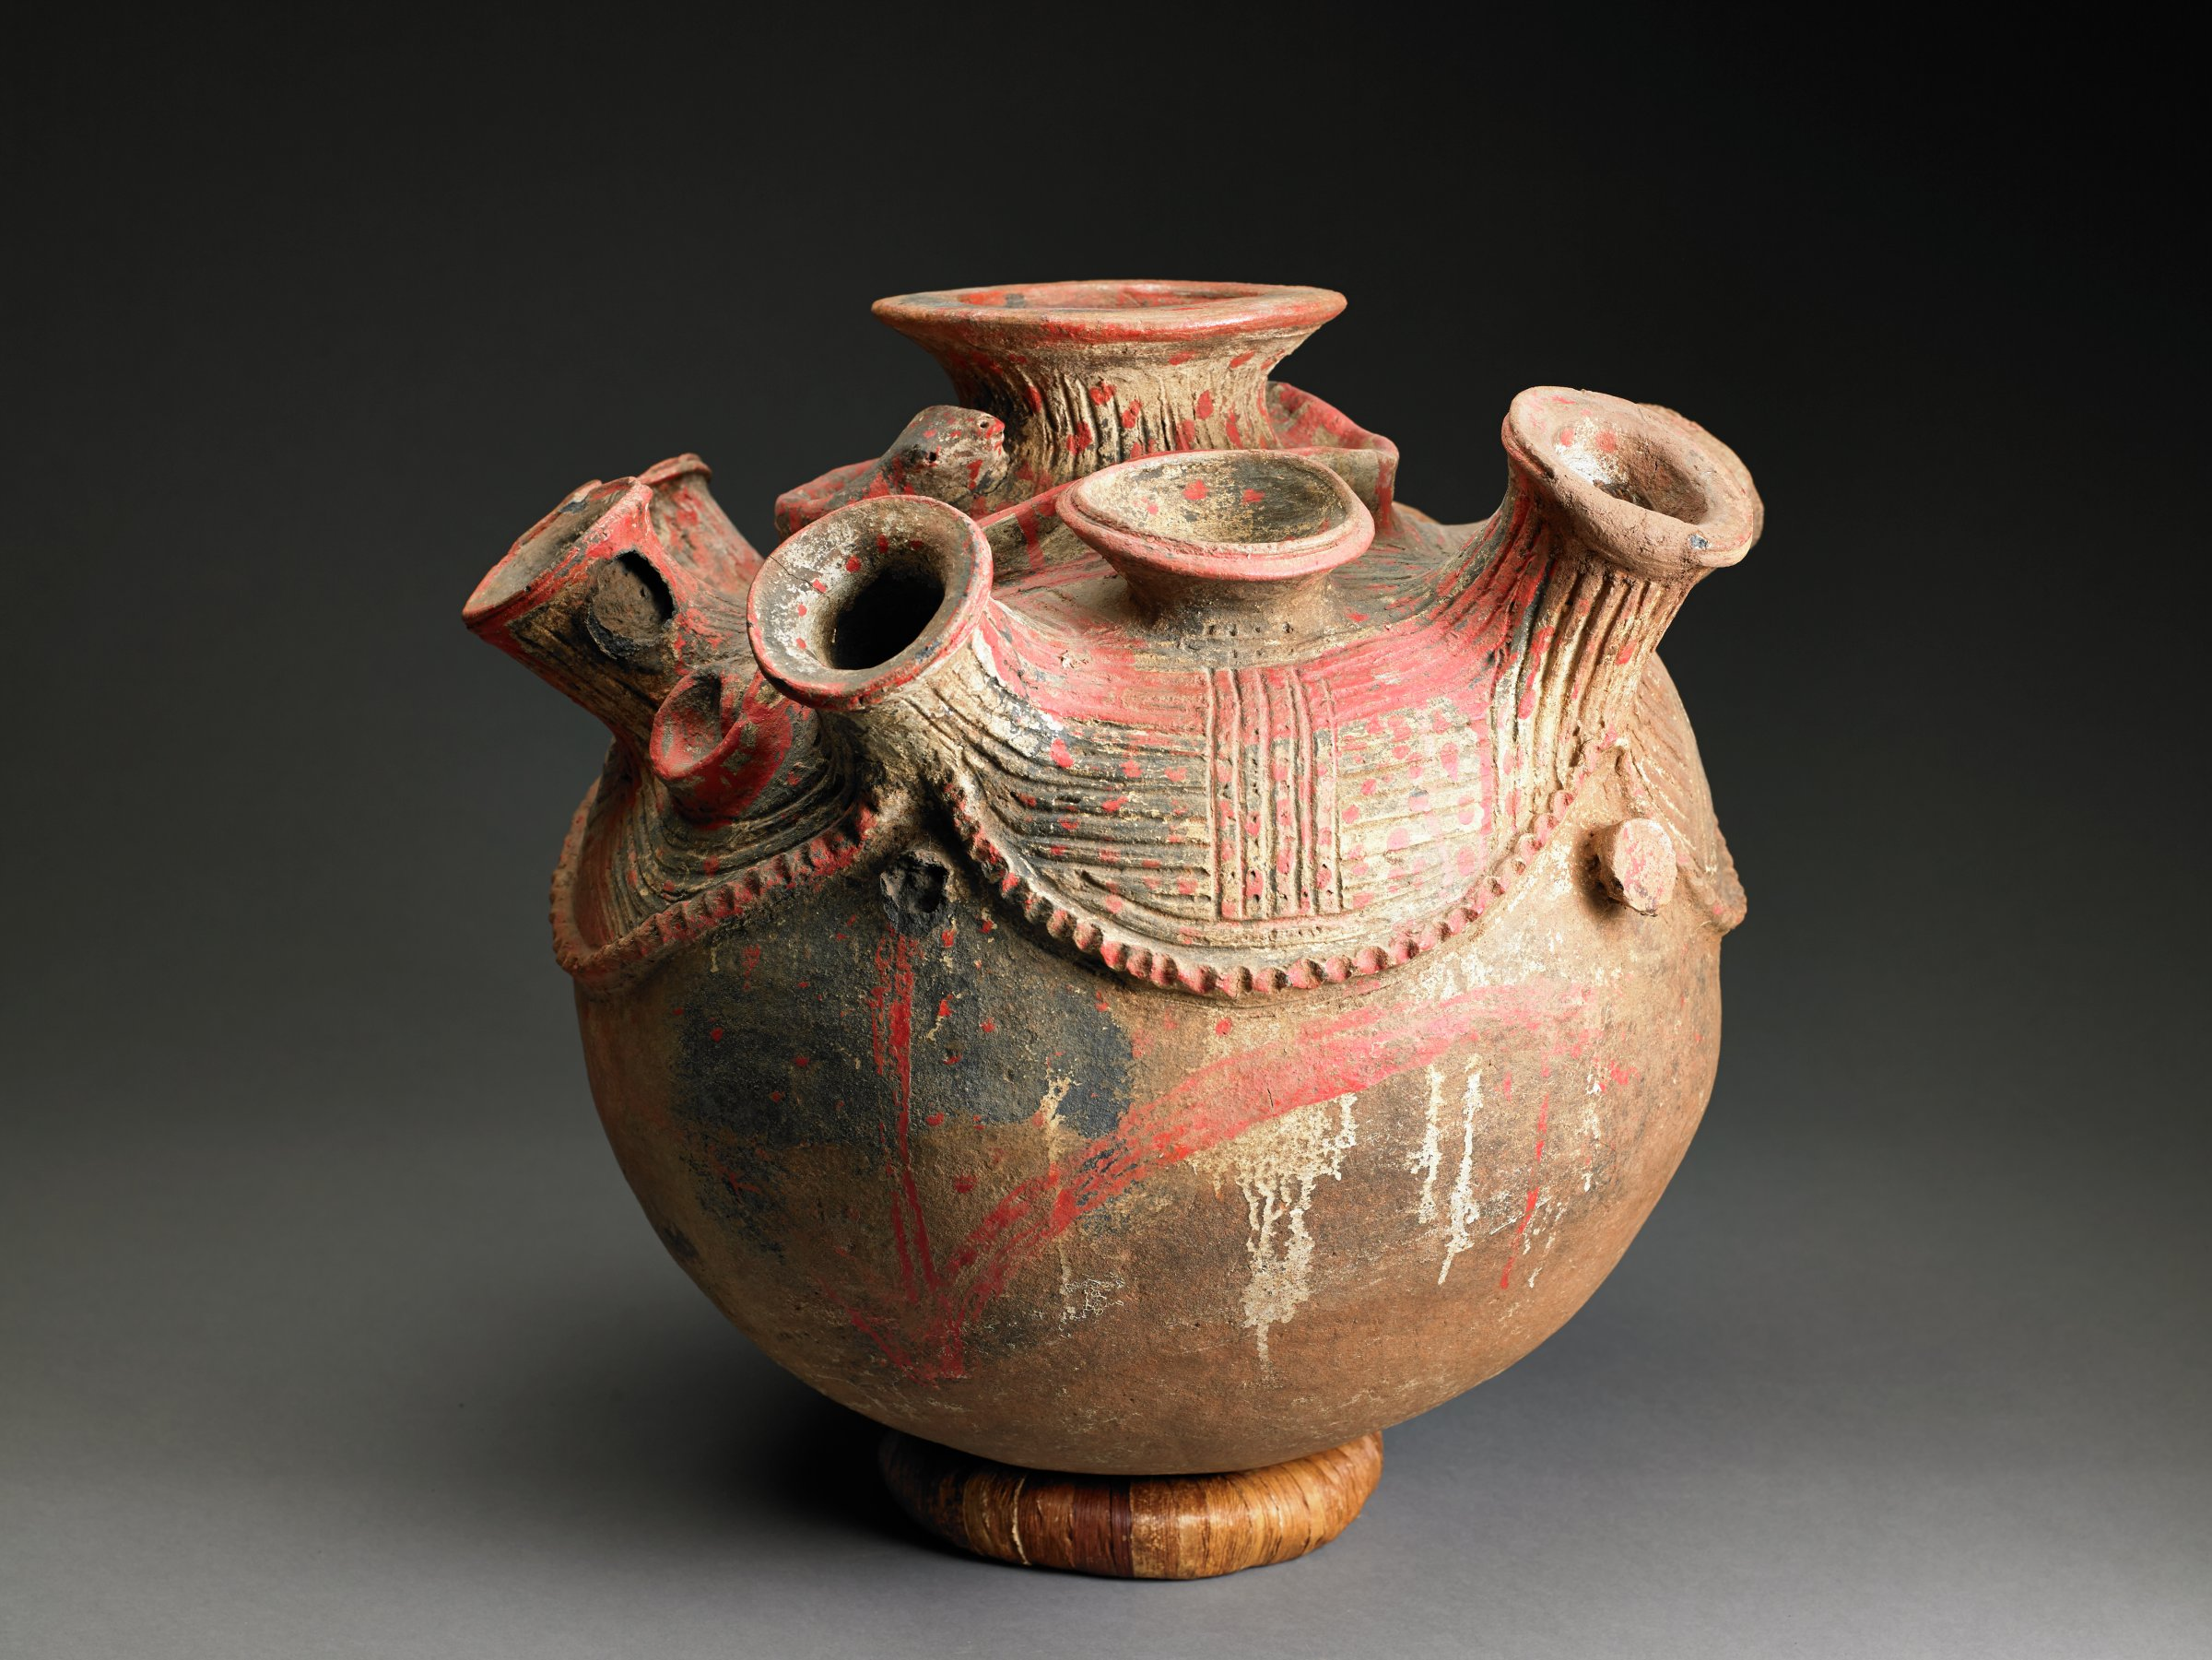 Round, brownish vessel with four knob handles has large spout opening at top, and numerous spout openings around shoulder; appliqued snake figure winds around openings, and red pigment is applied to spouts and snake.